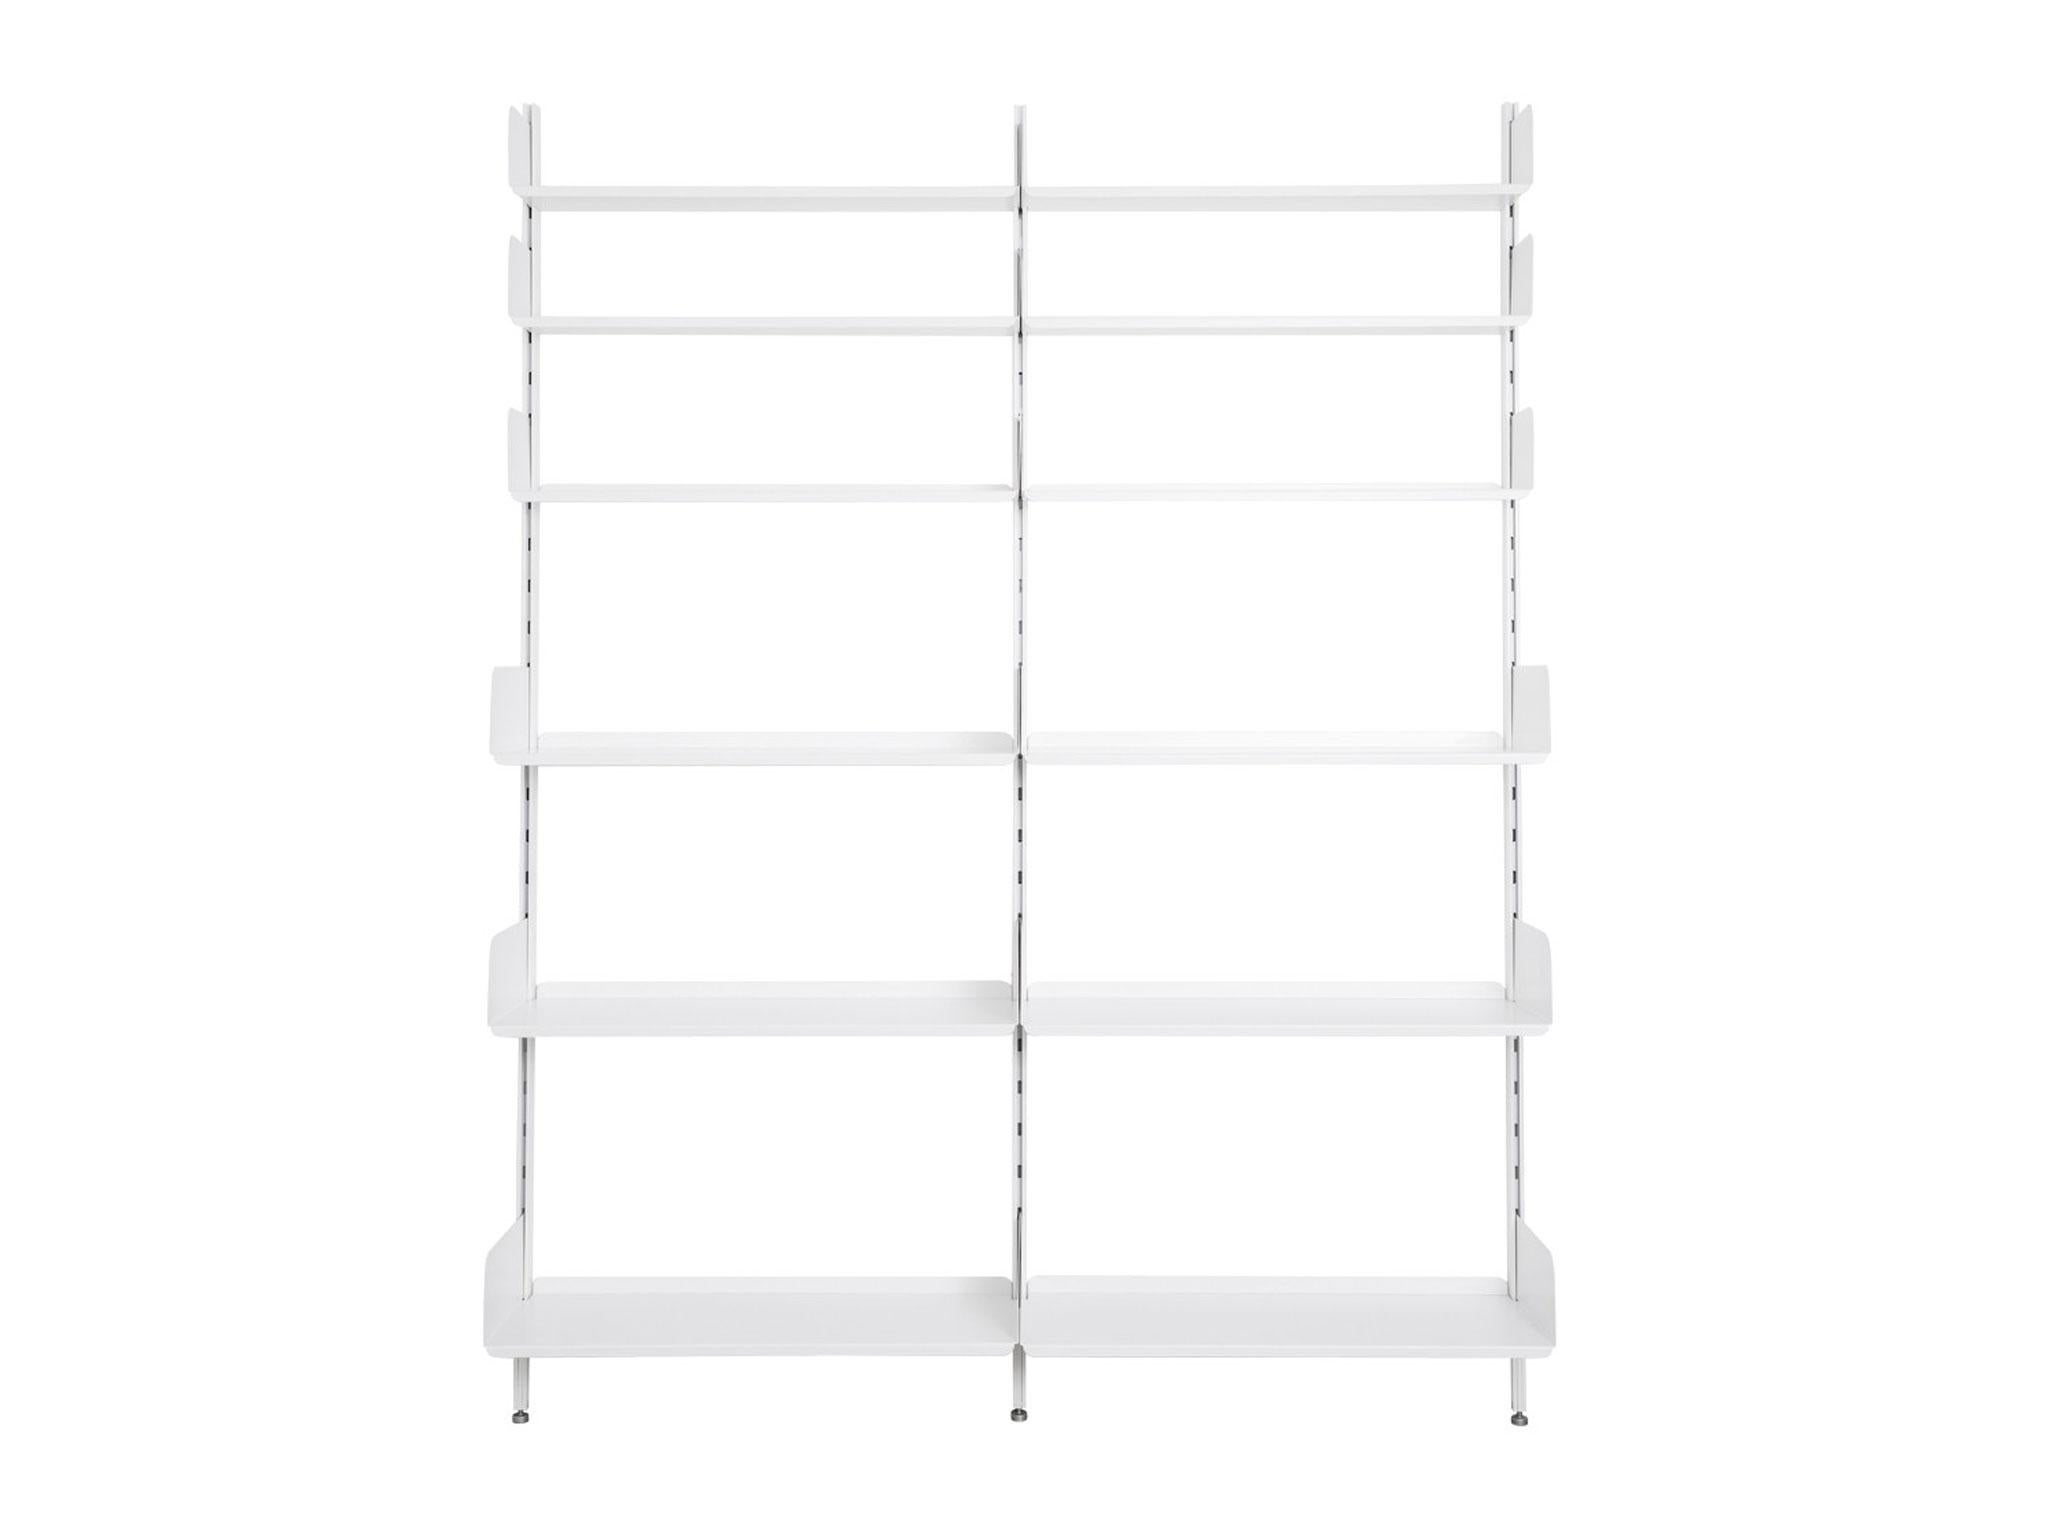 Best For Bookcases And Wardrobes This System Is Made Of Aluminium Uprights Wood Shelves Treated With A Smooth White Lacquer The Have Holes To